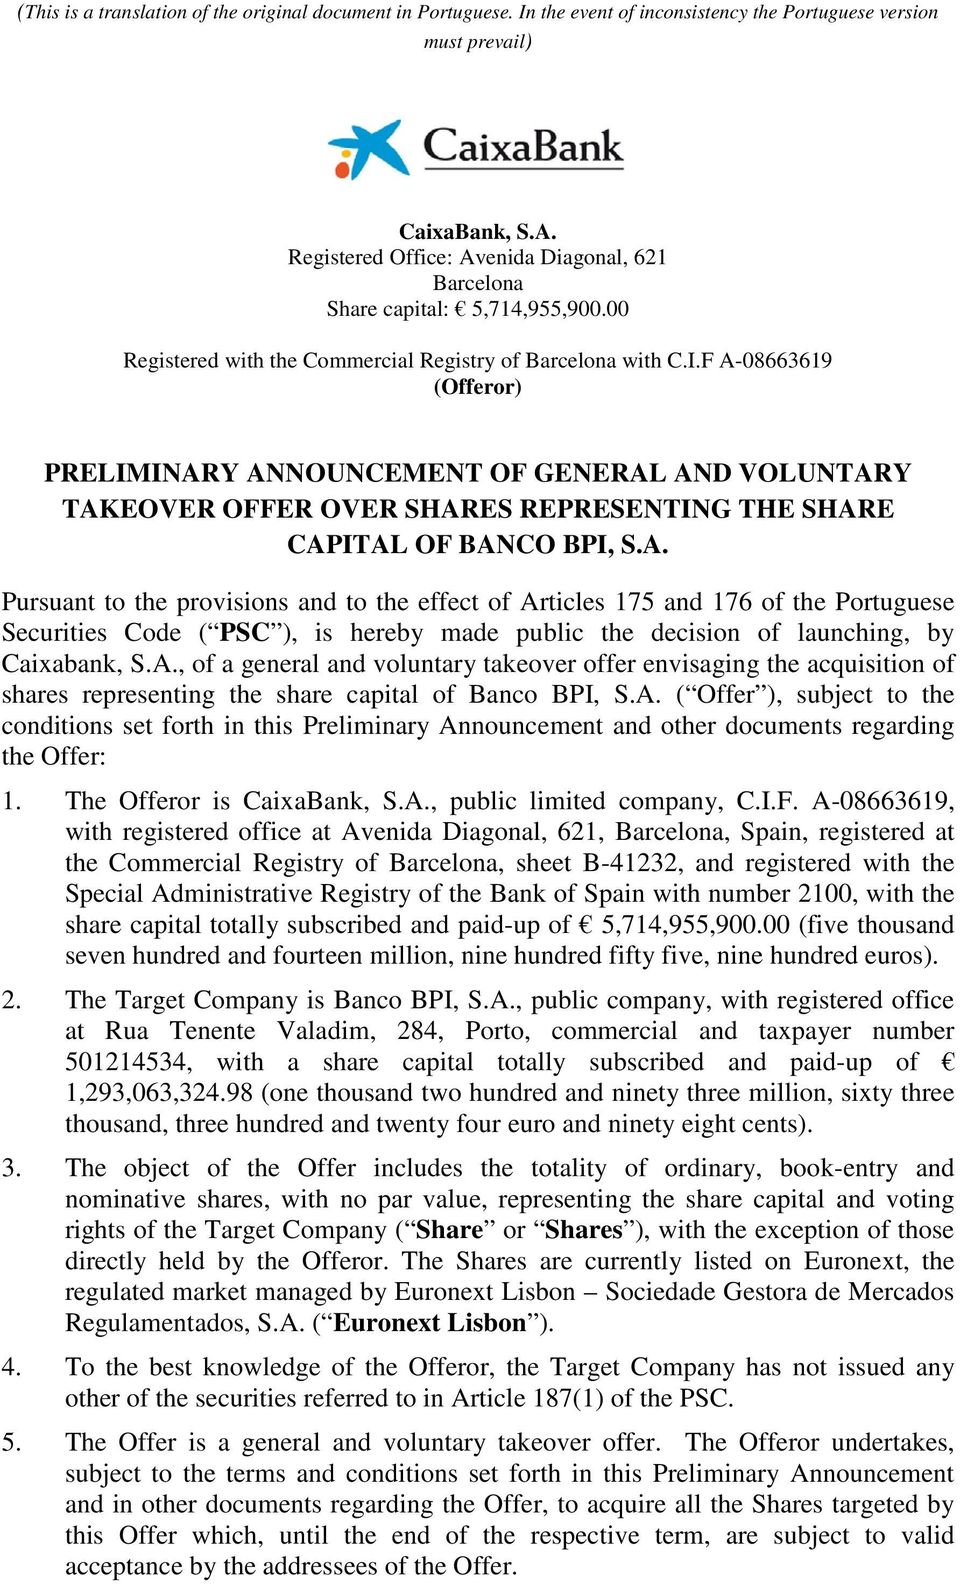 A., of a general and voluntary takeover offer envisaging the acquisition of shares representing the share capital of Banco BPI, S.A. ( Offer ), subject to the conditions set forth in this Preliminary Announcement and other documents regarding the Offer: 1.